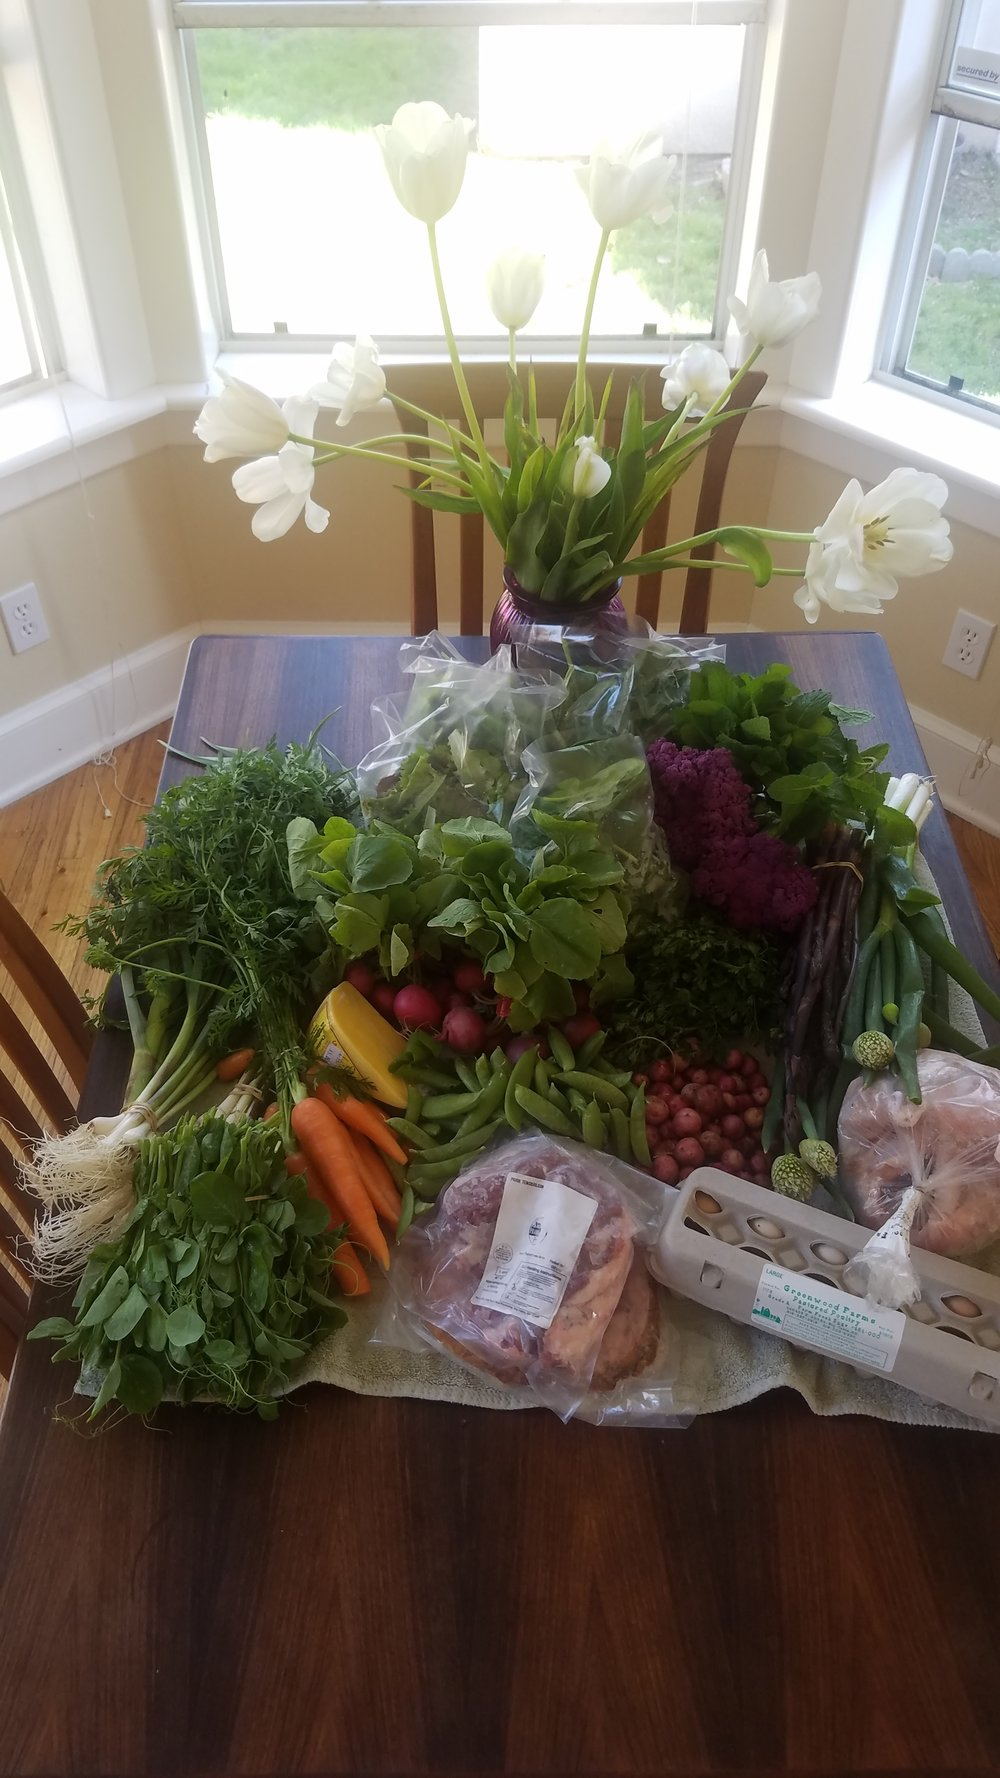 a typical saturday farmer's market haul